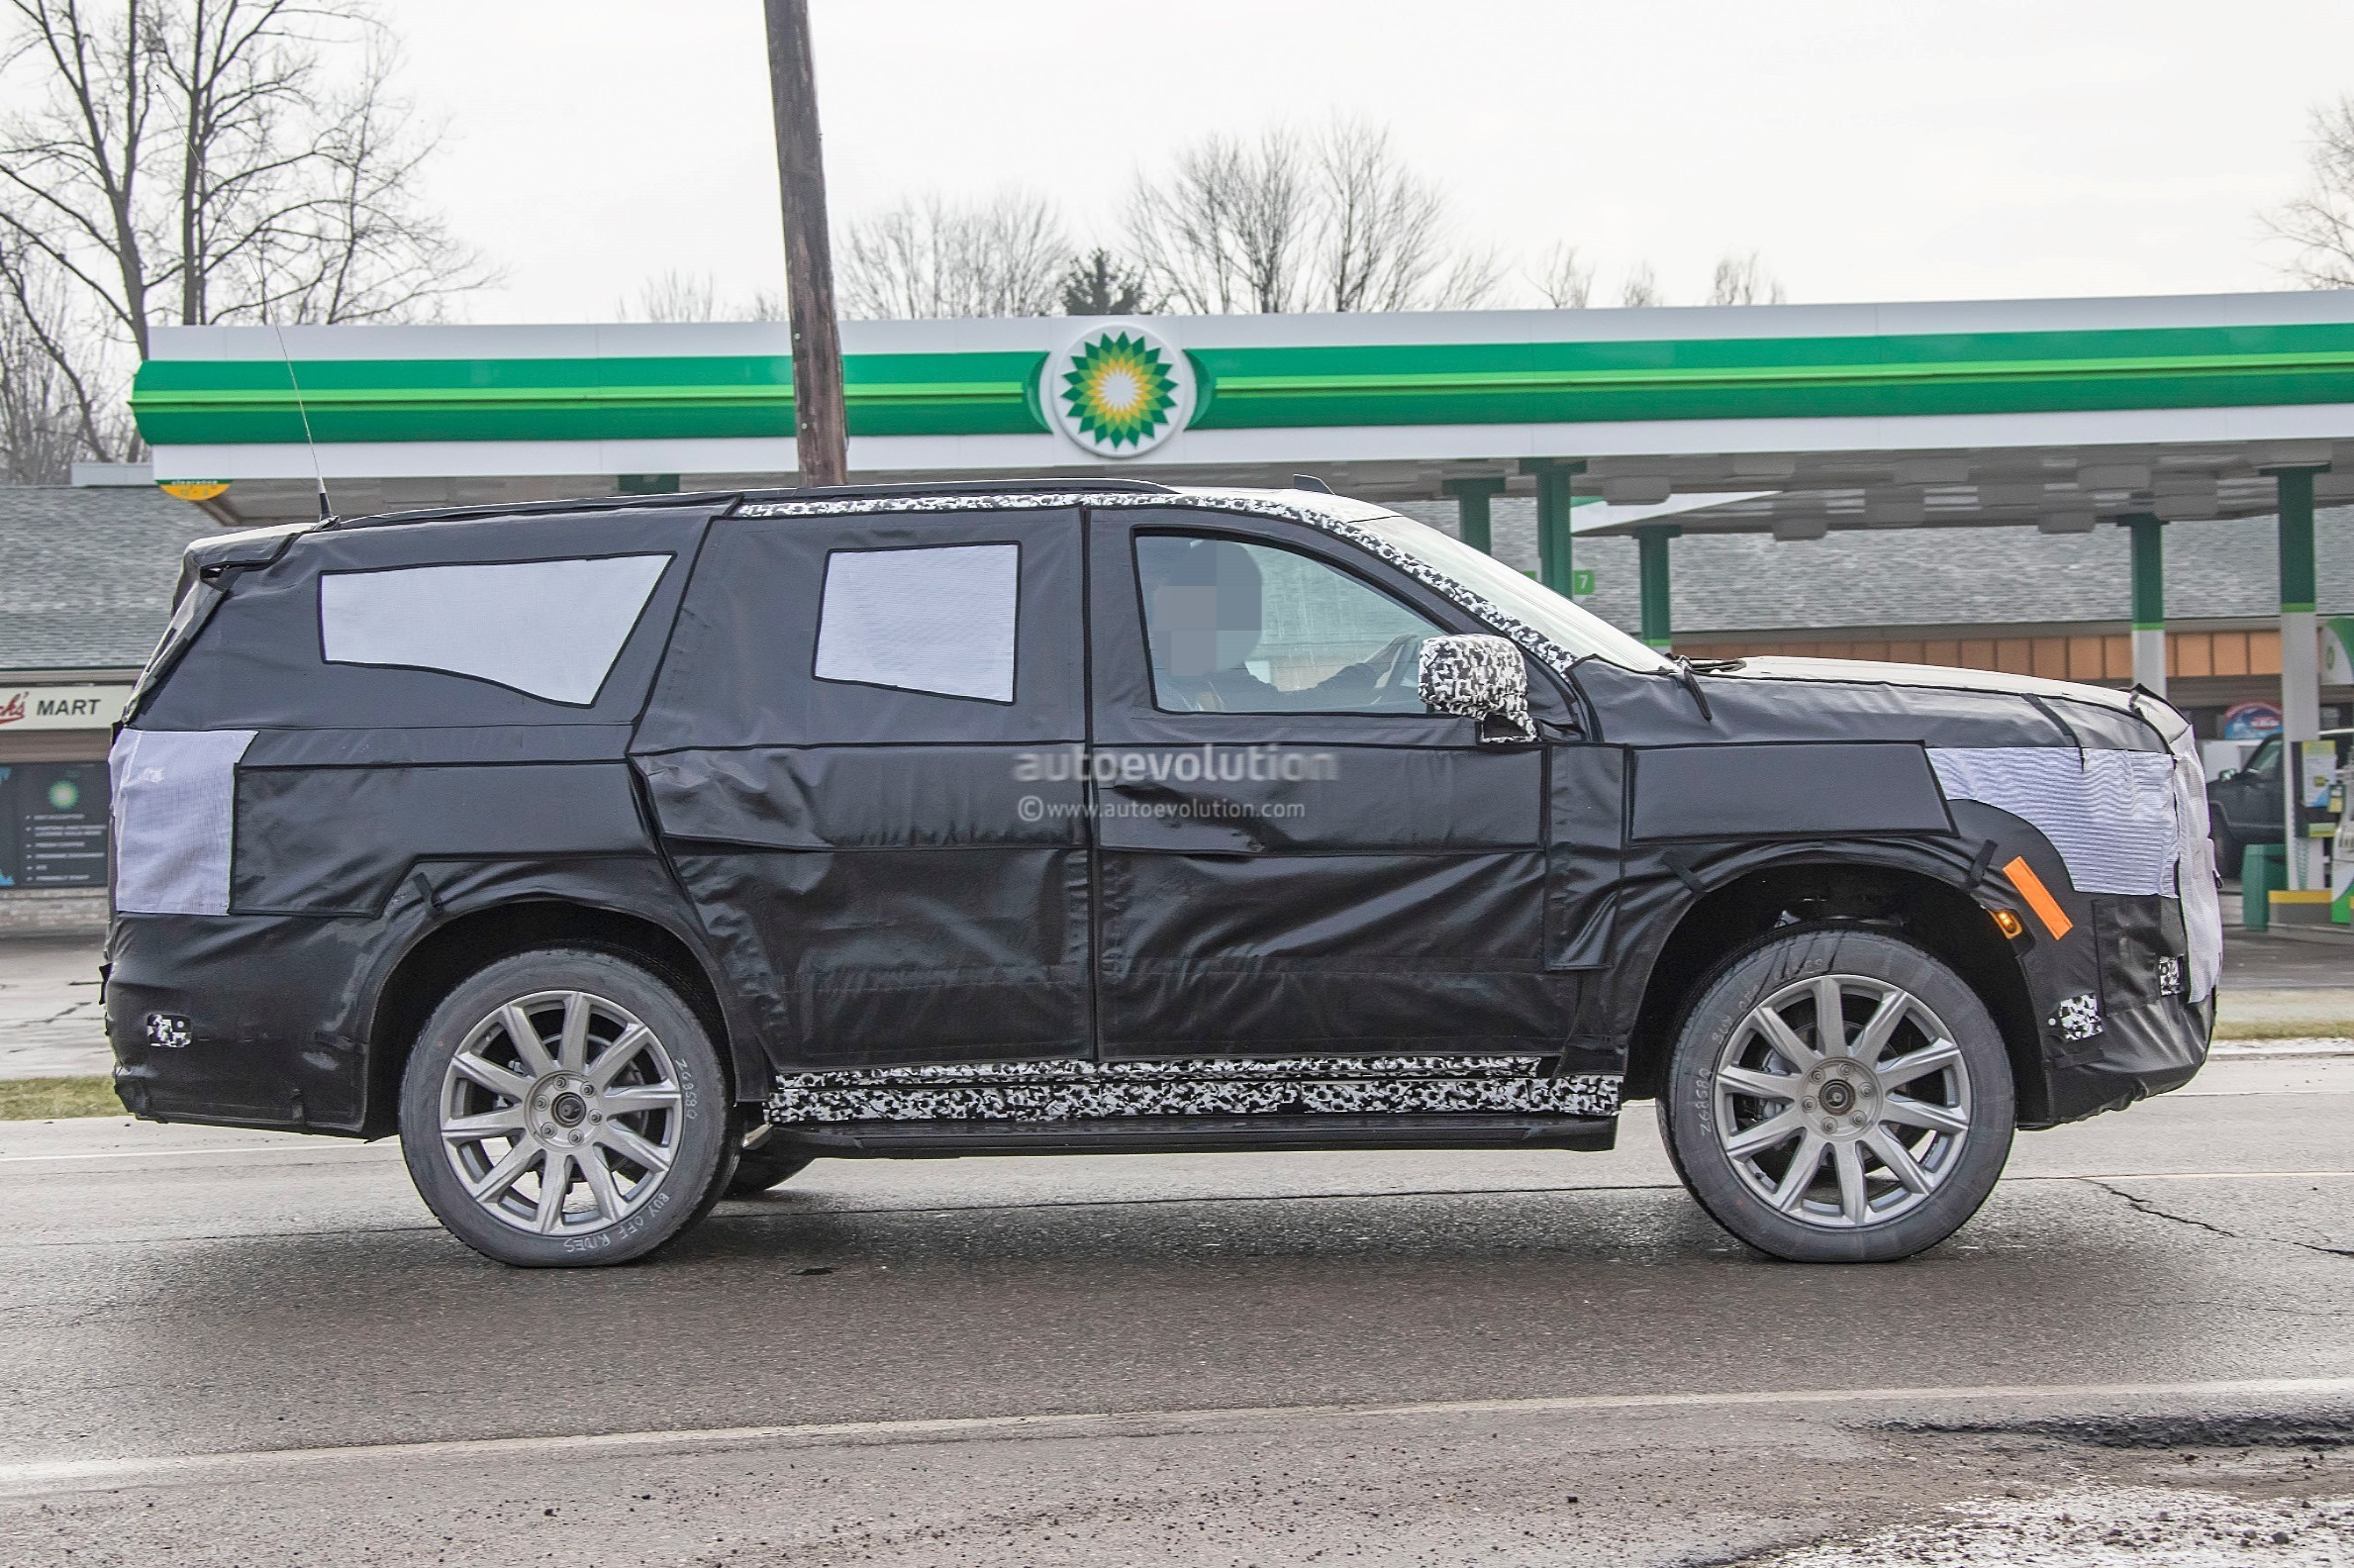 202 - [Cadillac] Escalade V 2020-cadillac-escalade-spied-with-makeshift-dodge-ram-crosshair-grille_26